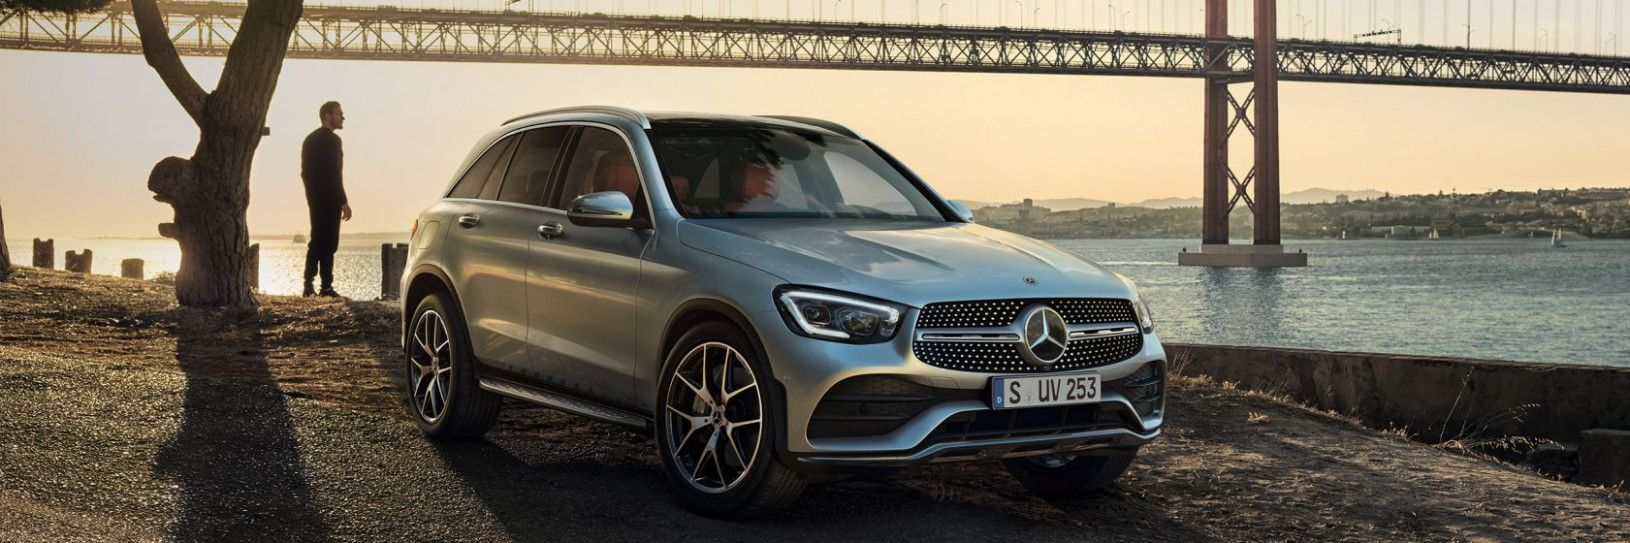 2019 Mercedes Glc Specs And Review in 2020 Mercedes